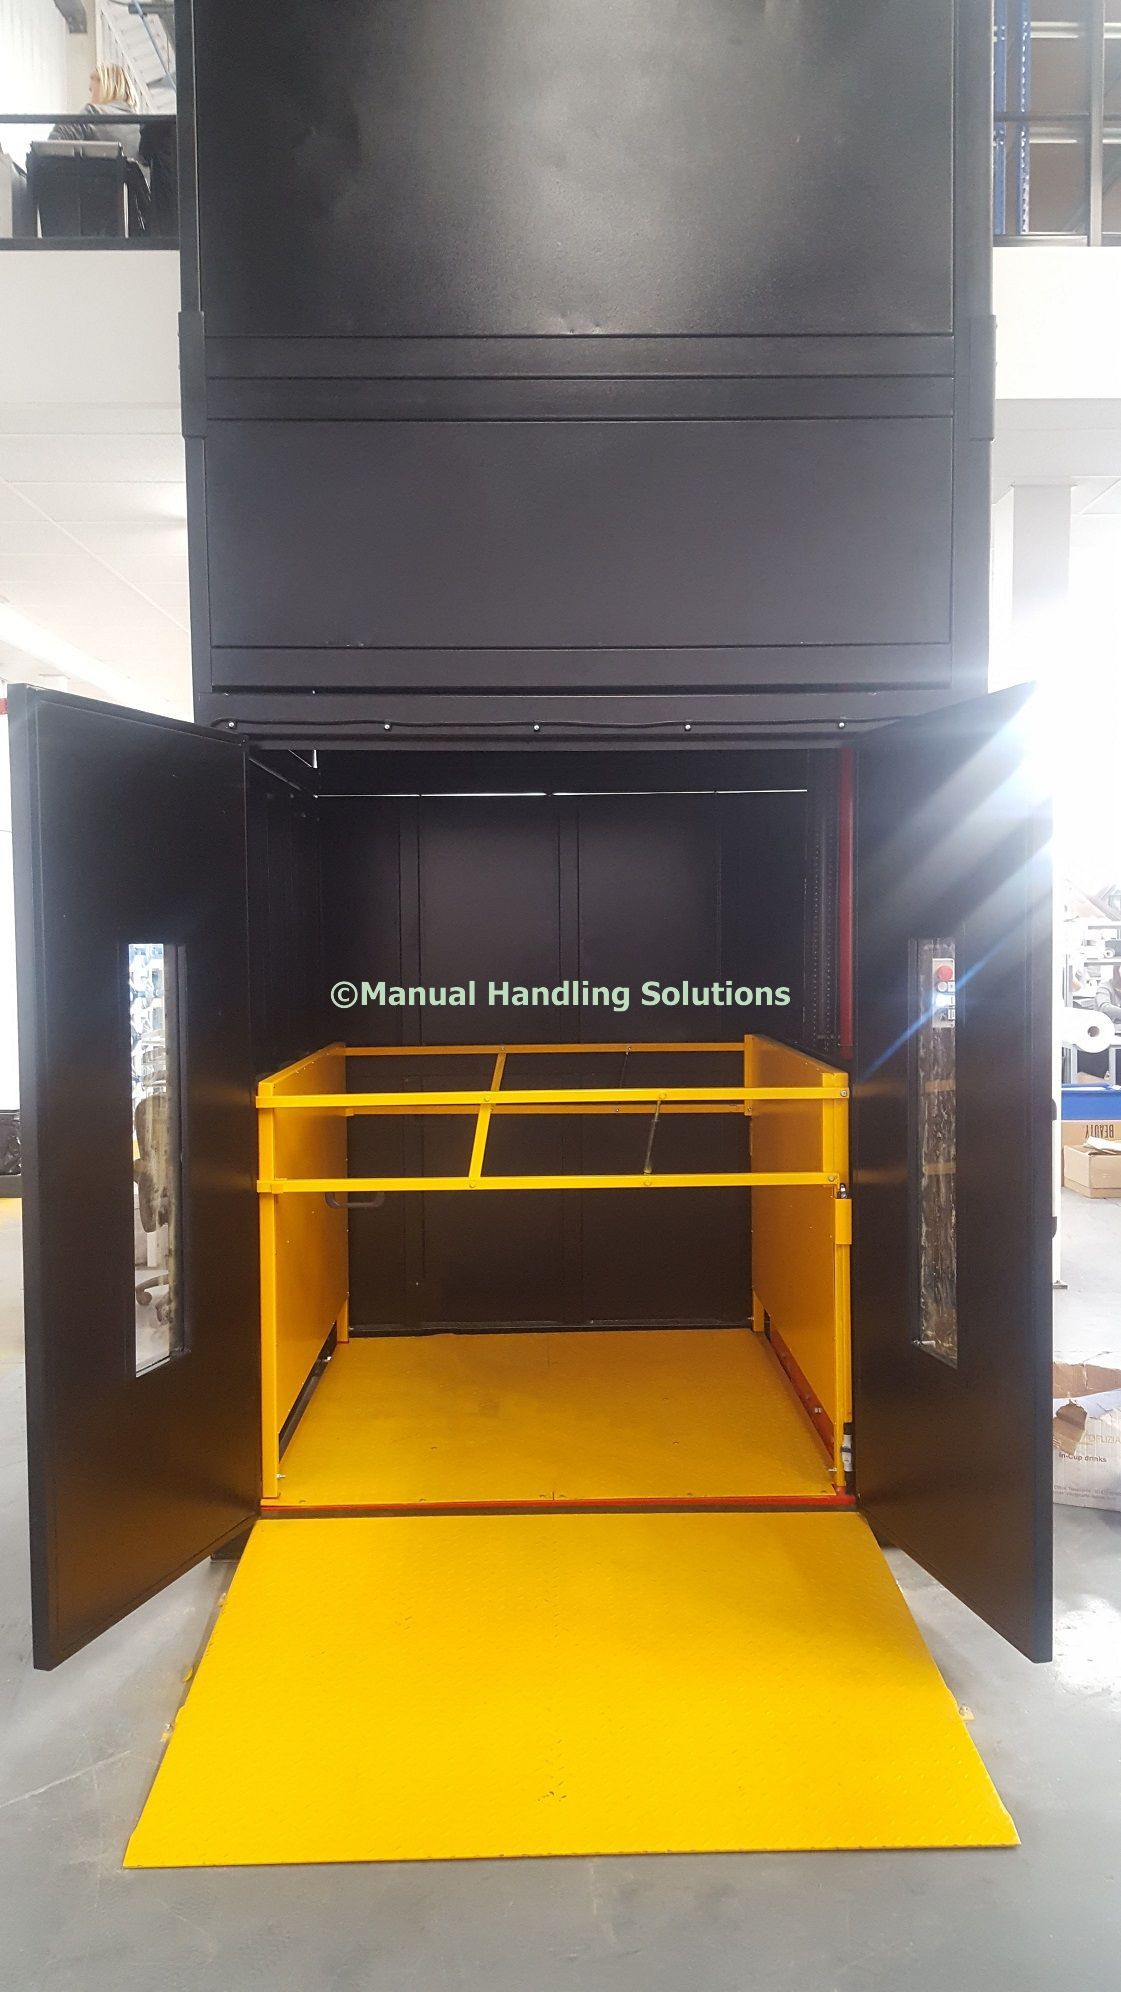 Goods Lift Solutions By Mhs We Offer A Complete Range Of Goods